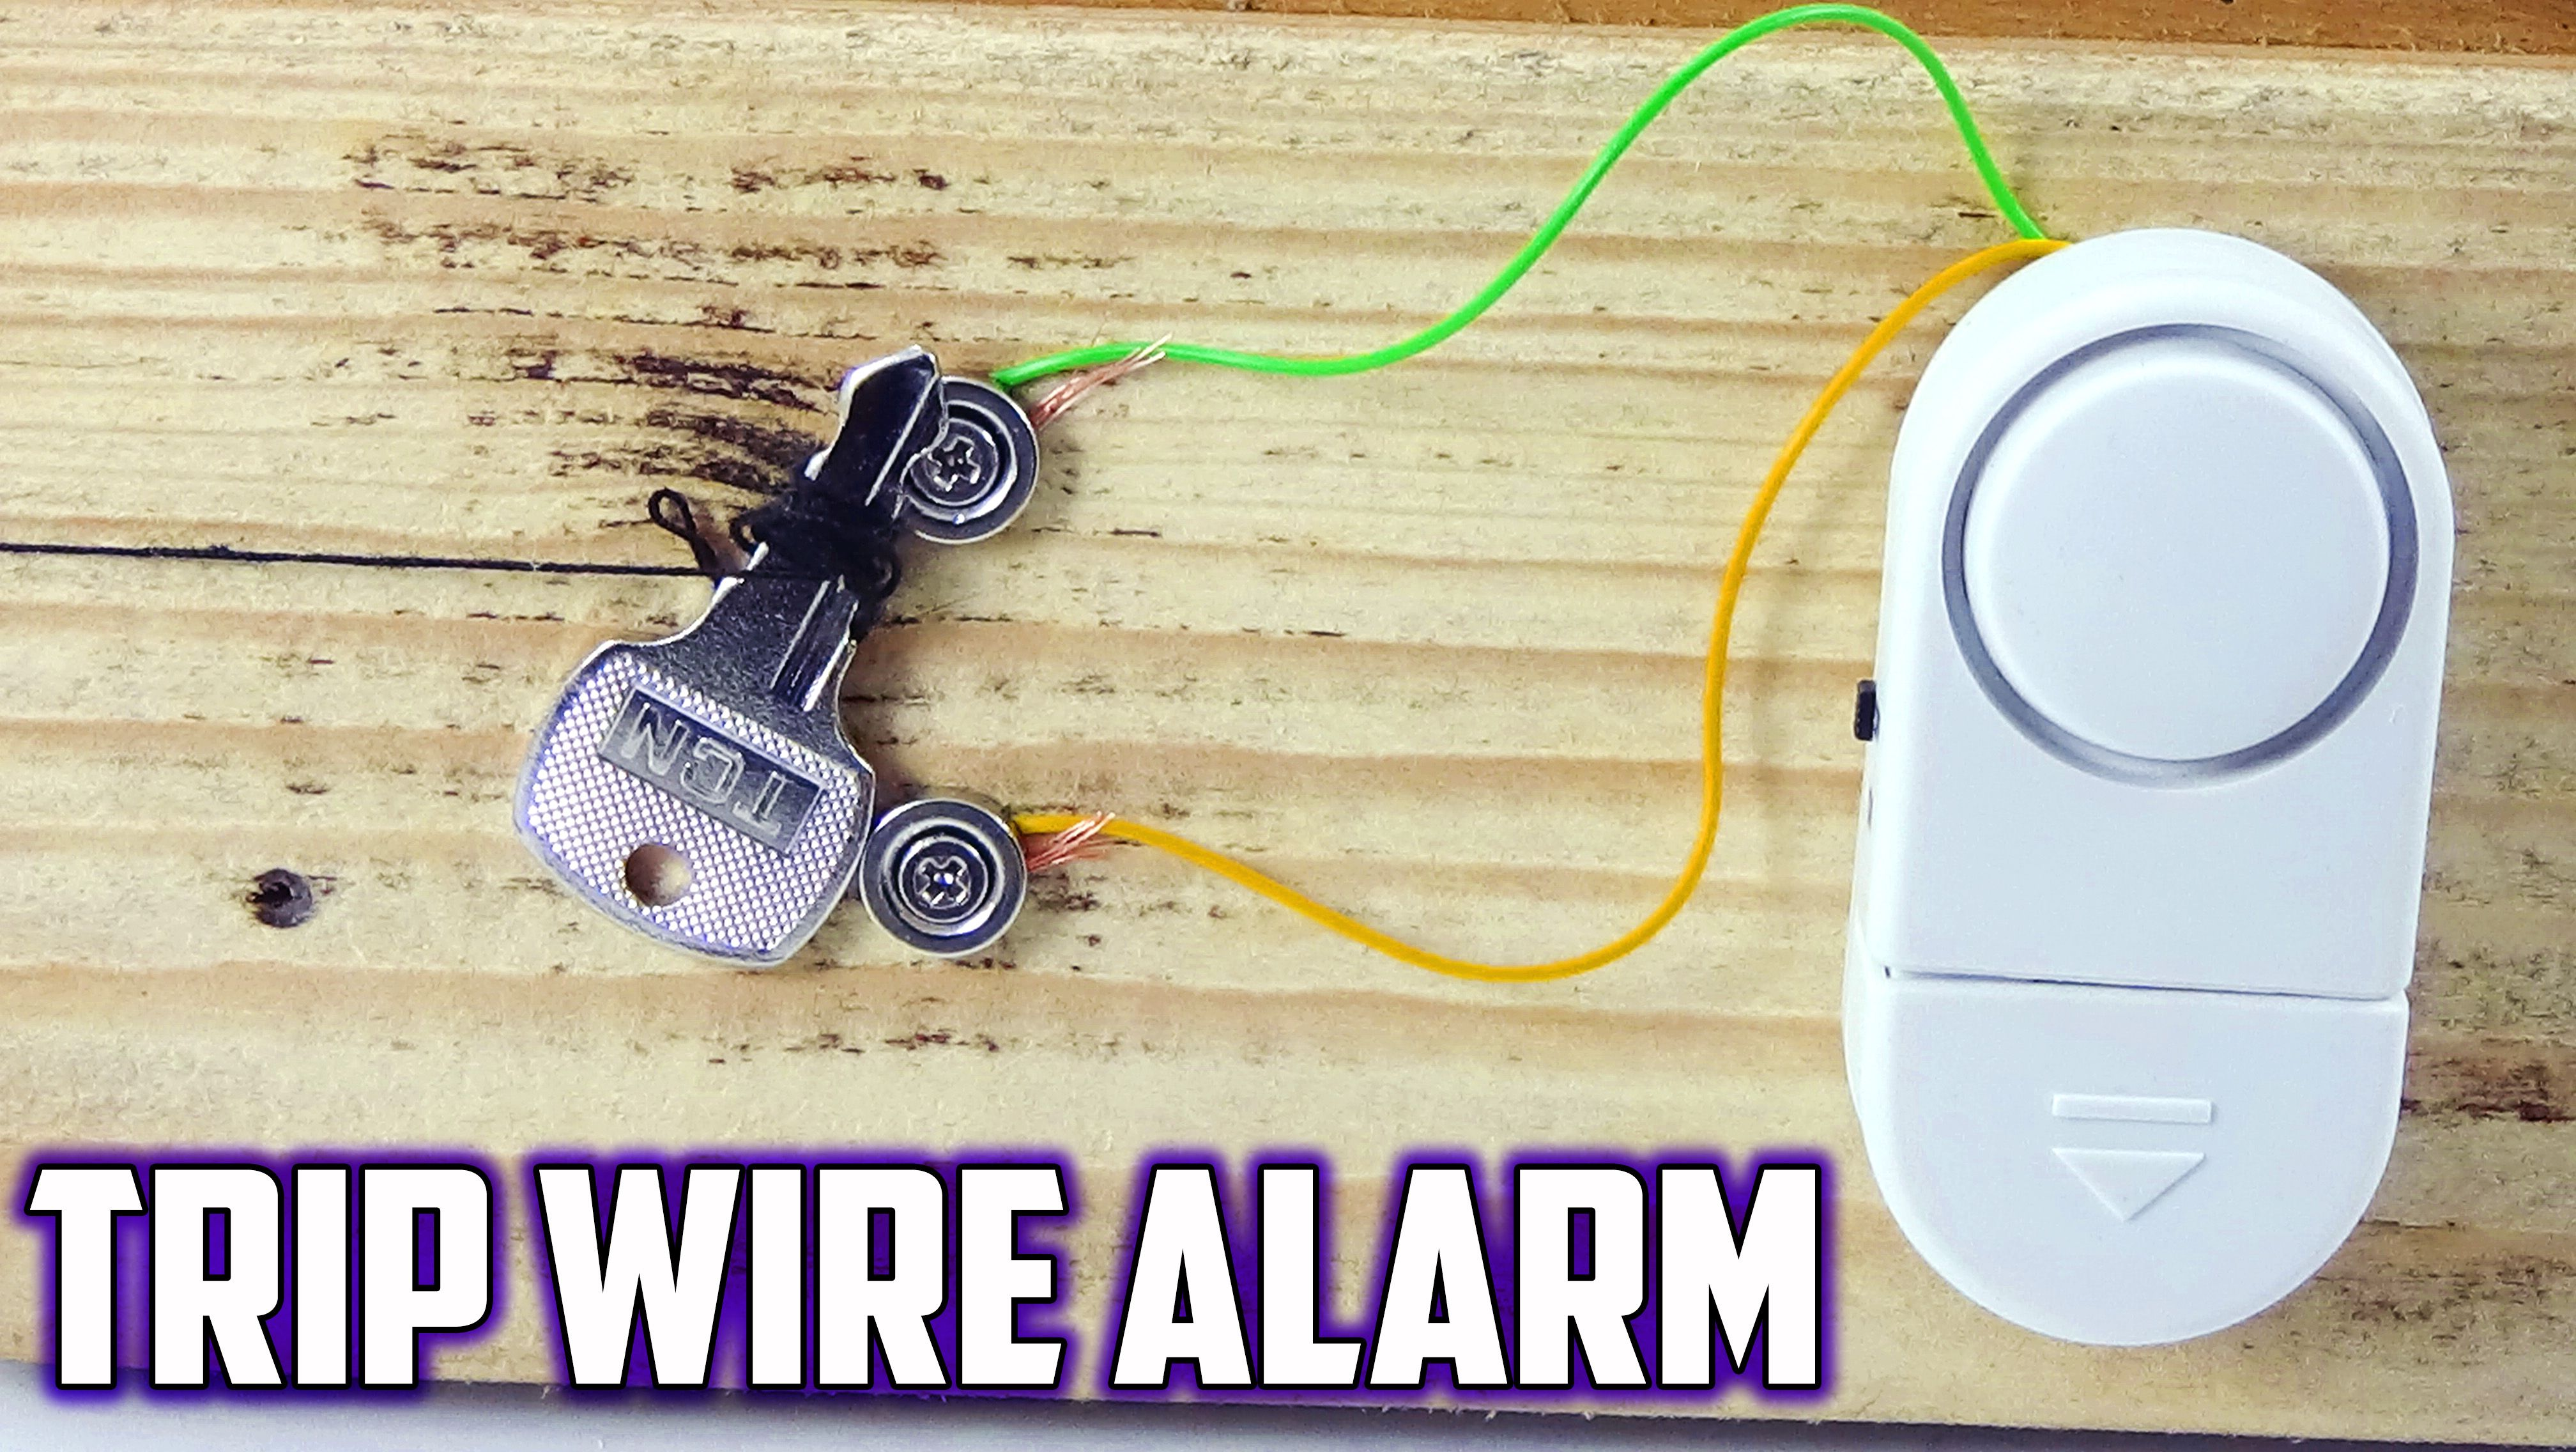 DIY TRIP WIRE ALARM WITH NEODYMIUM MAGNETS | DIY FUNNY PROJECTS ...